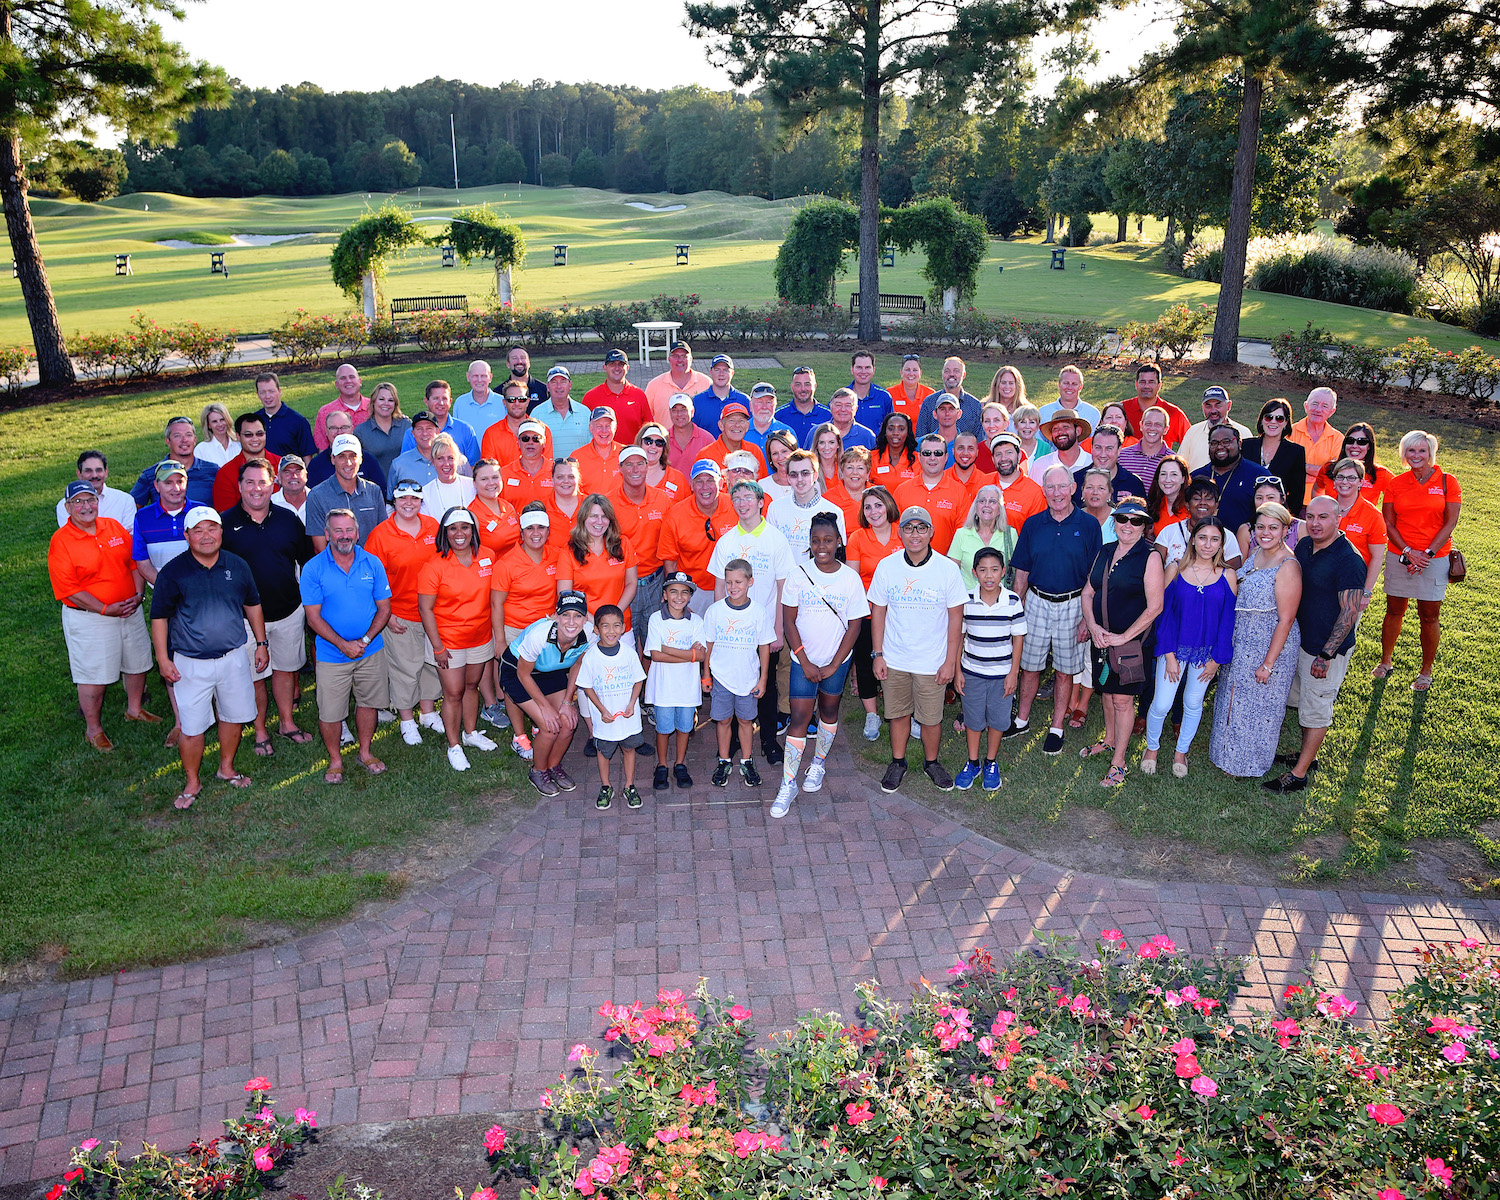 19th Annual We Promise Charity Golf Classic, West Neck